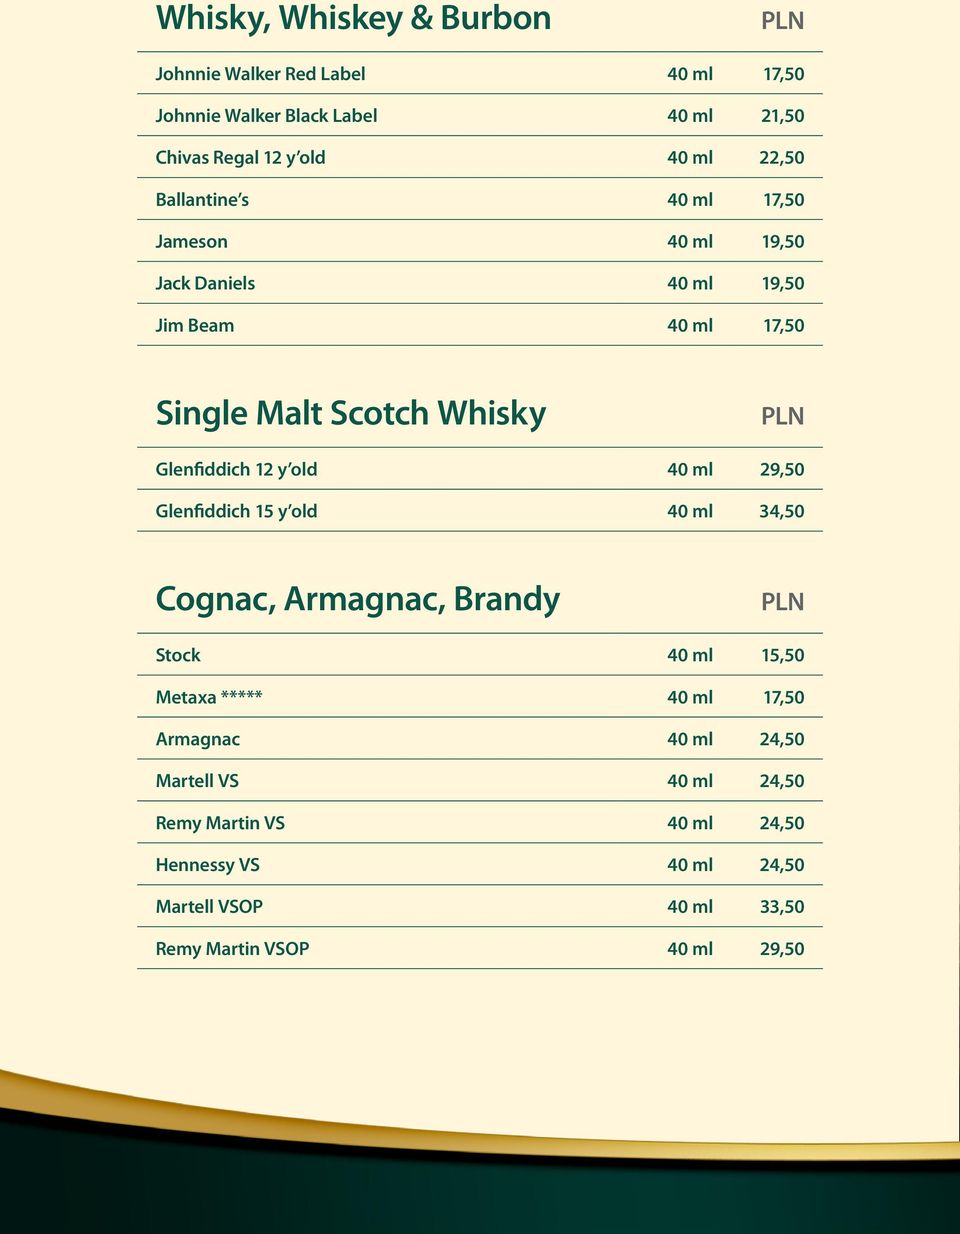 Glenfiddich 12 y old 40 ml 29,50 Glenfiddich 15 y old 40 ml 34,50 Cognac, Armagnac, Brandy Stock 40 ml 15,50 Metaxa ***** 40 ml 17,50